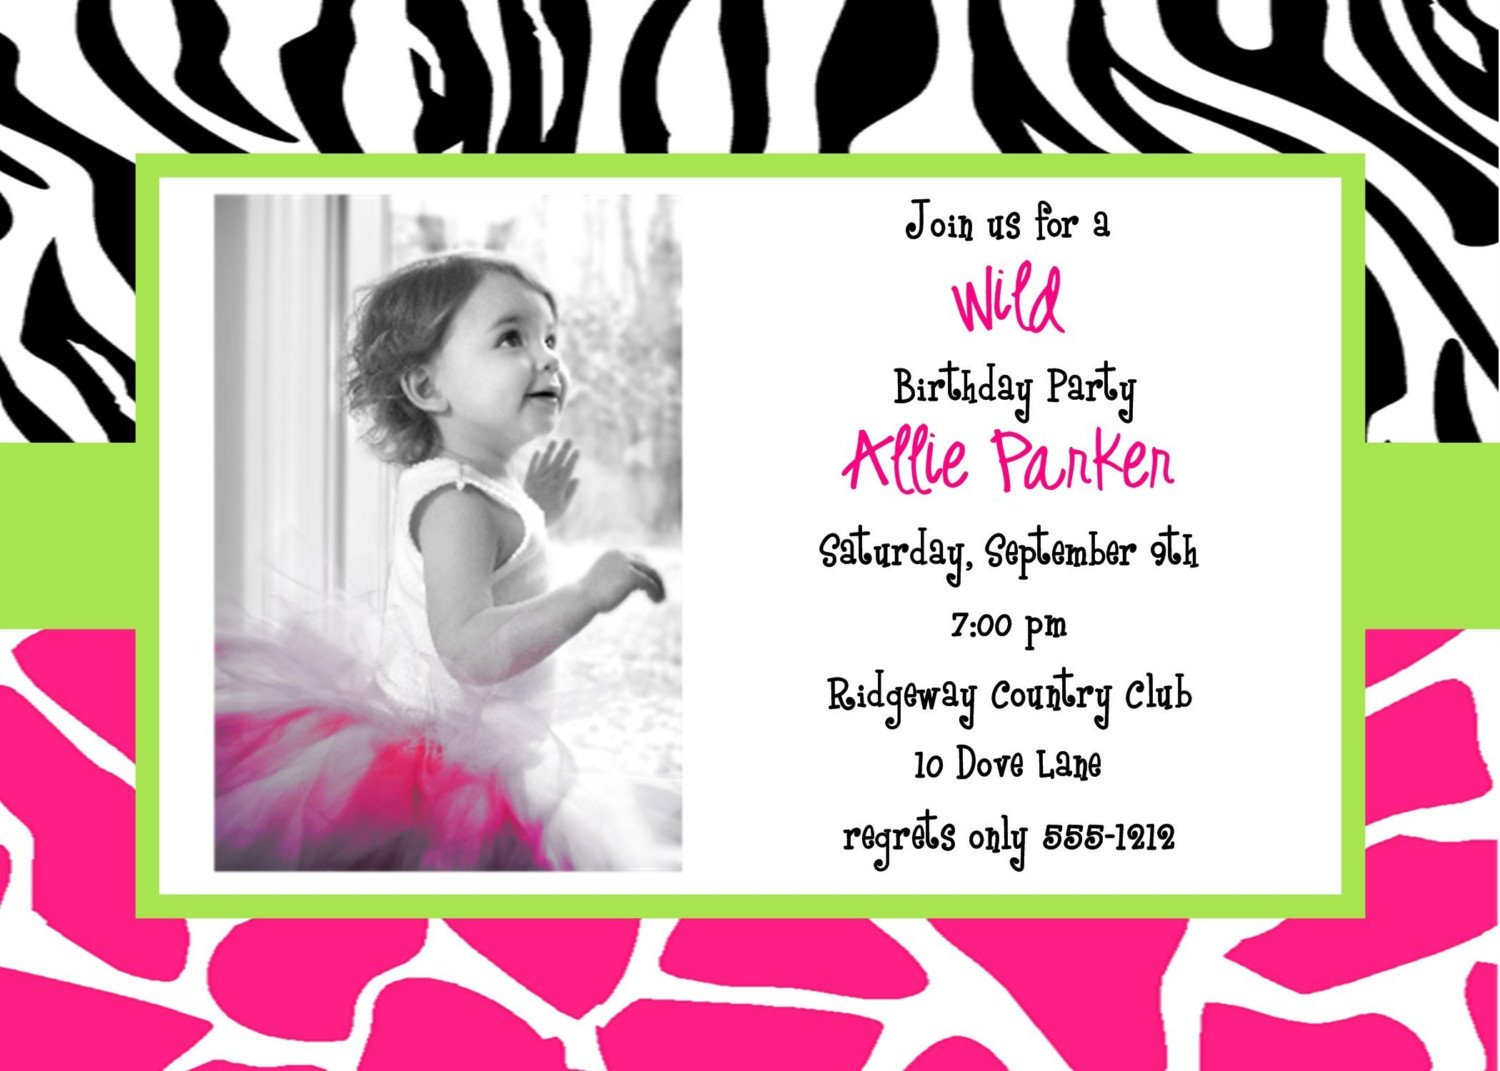 Free Invitation Template Printable How to Choose the Best E Free Printable Birthday